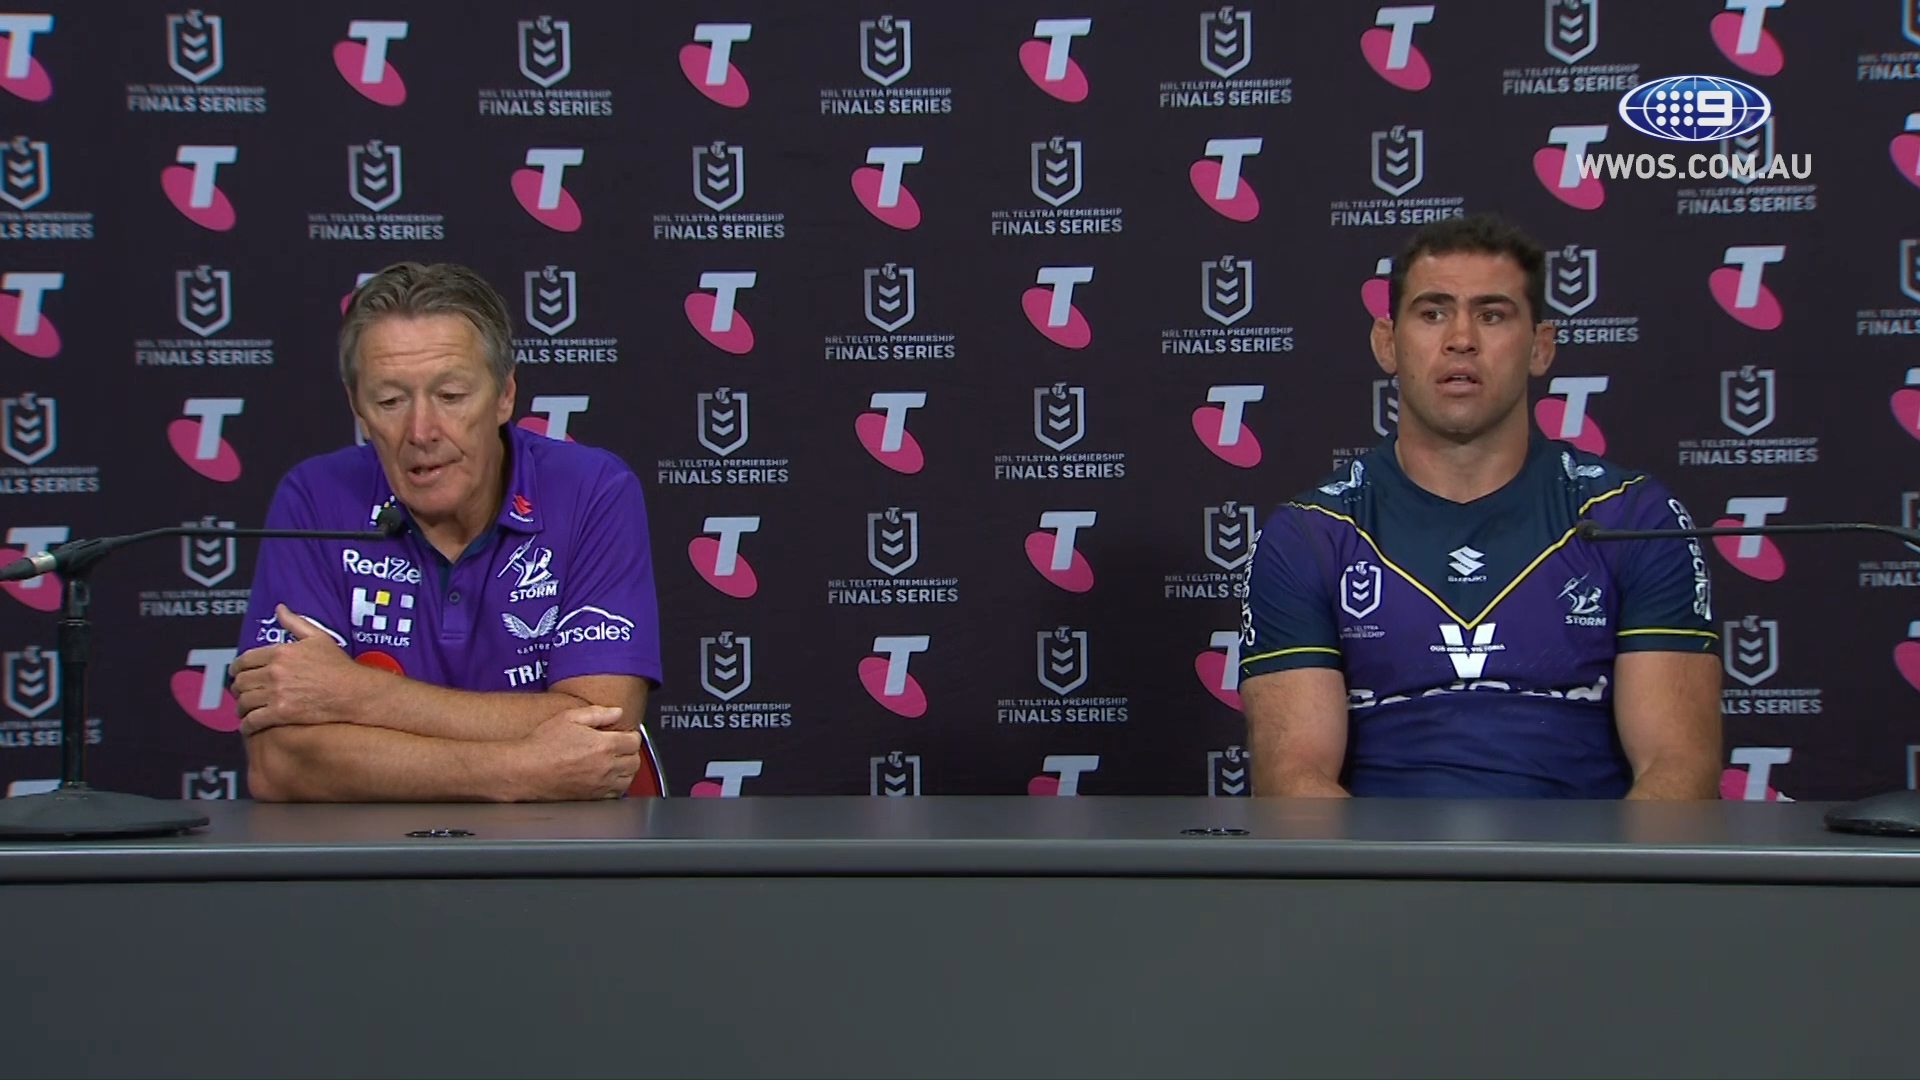 NRL Presser: Bellamy upset with missed opportunities - Preliminary Finals